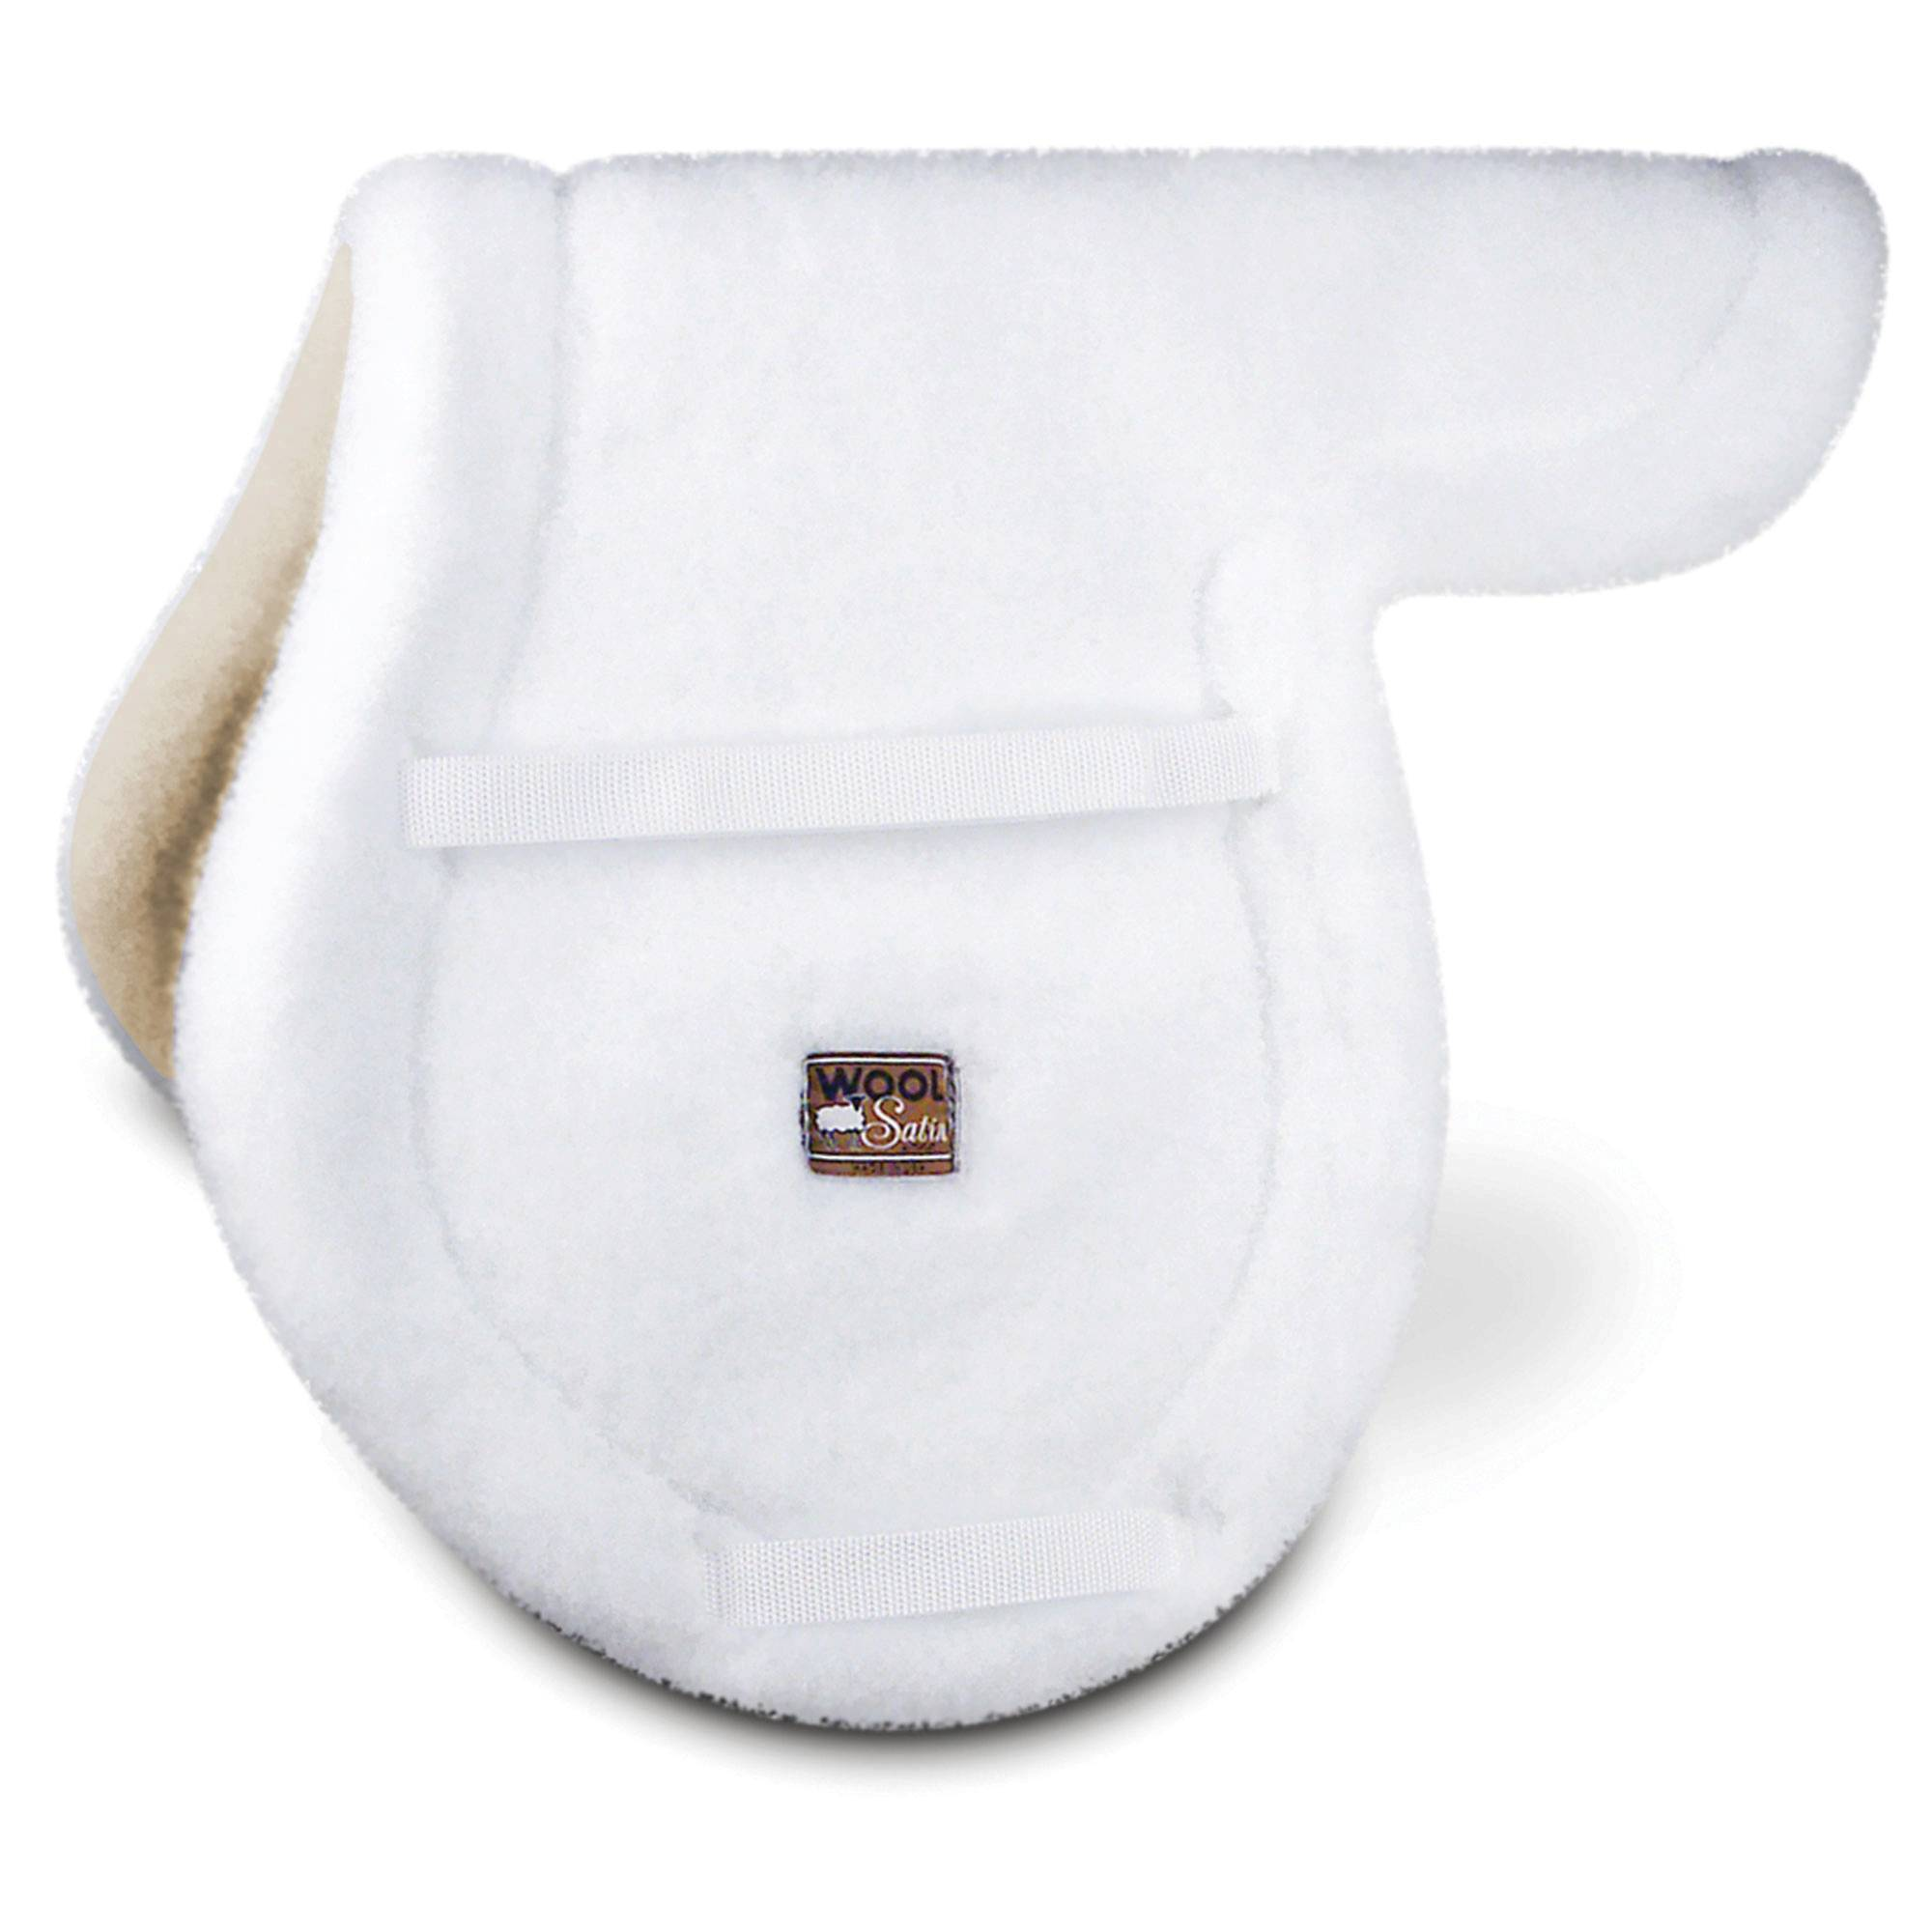 Toklat Wool Satin Close Contact Pad